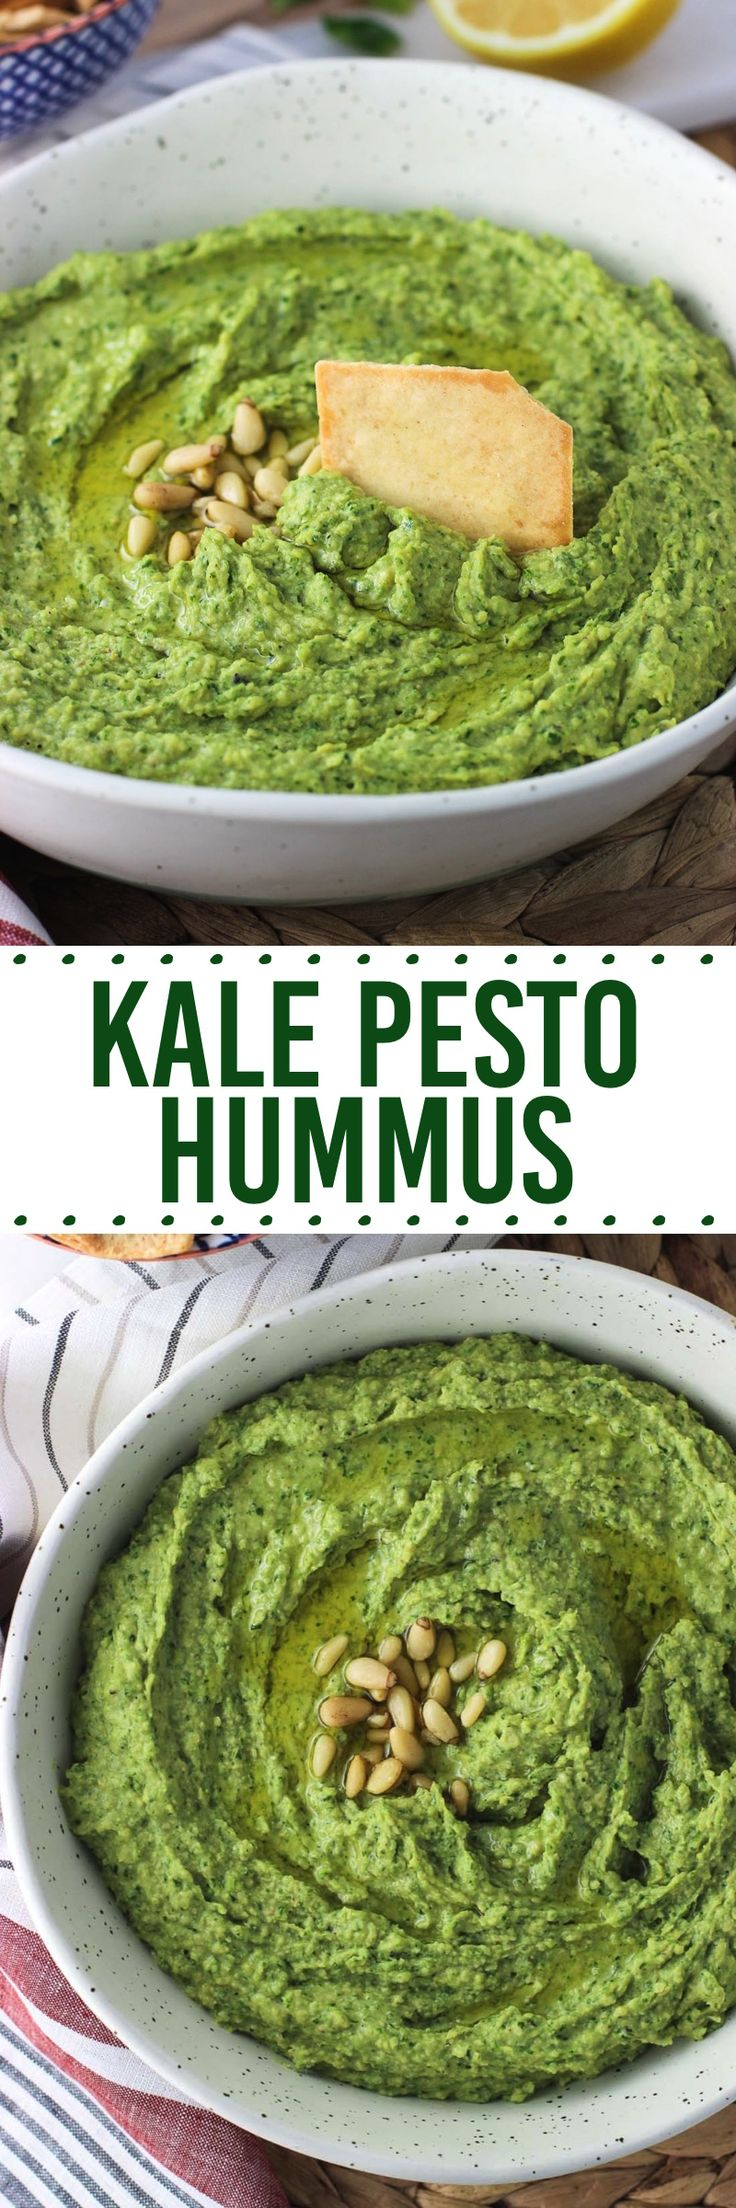 Kale Pesto Hummus is a creamy, healthy snack that's easy to make at home! Kale and basil leaves, along with other traditional pesto ingredients, take hummus to the next level.